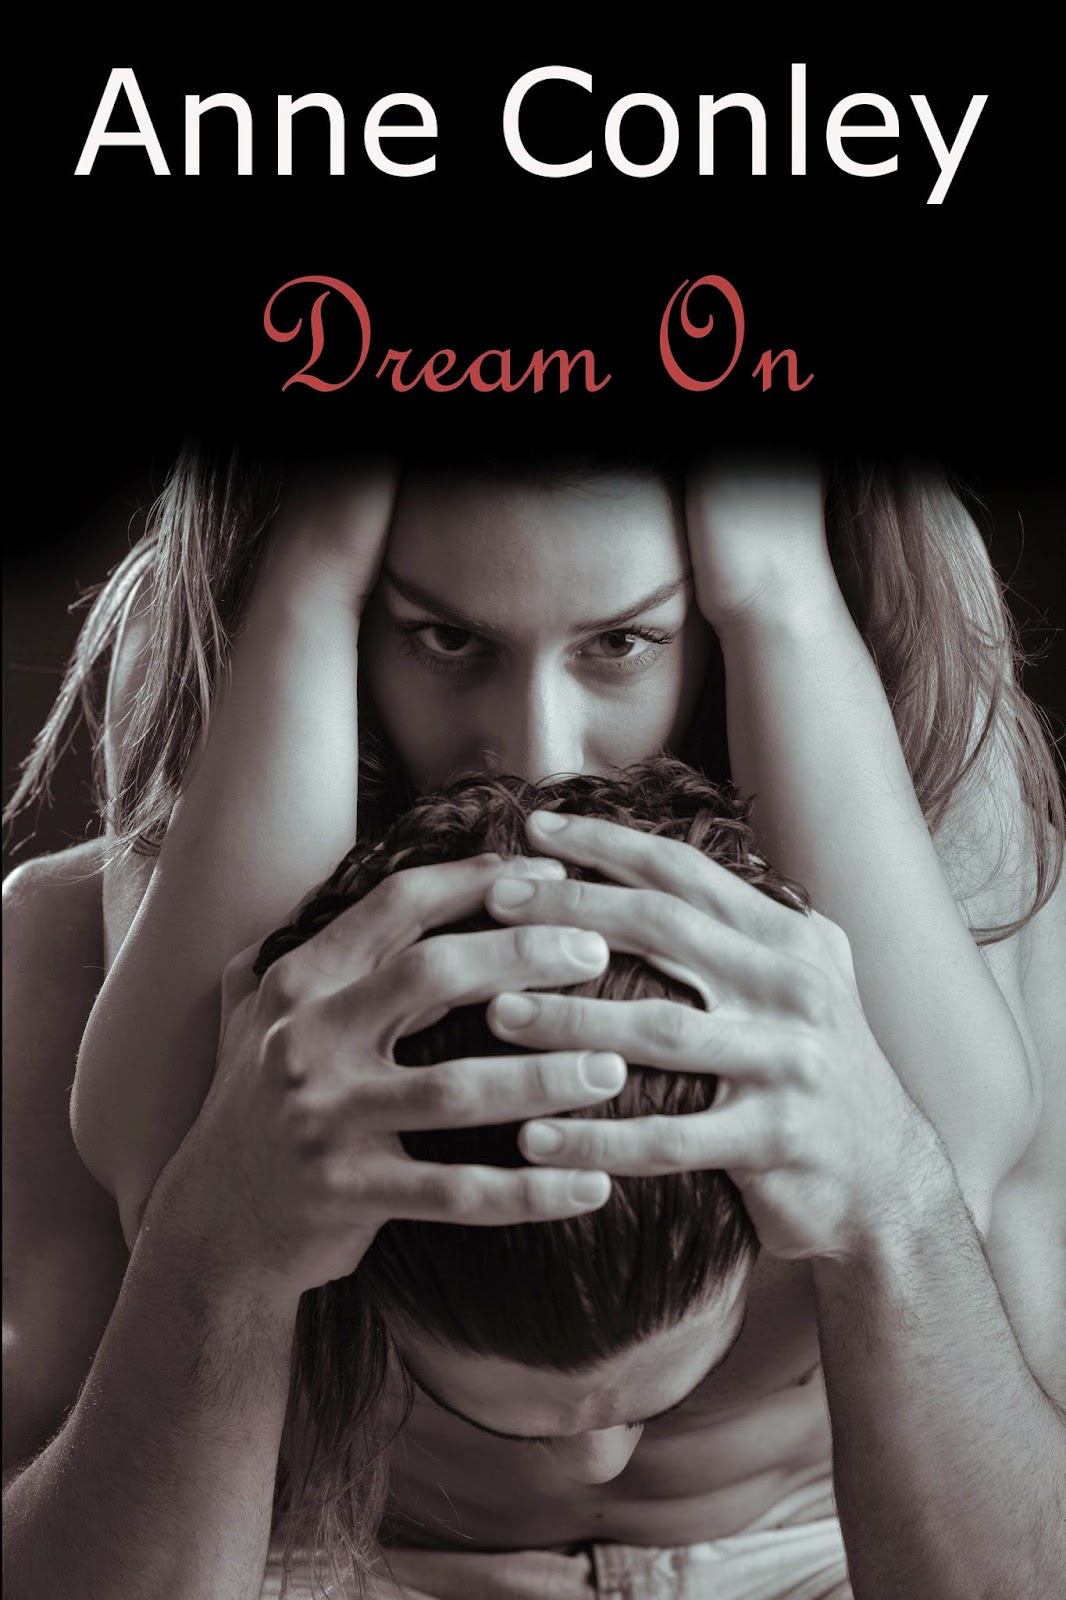 https://www.amazon.com/Dream-On-Stories-Serendipity-2-ebook/dp/B00B5HEHT2/ref=as_sl_pc_tf_til?tag=theconcor-20&linkCode=w00&linkId=H4R3U5XIXRRRZIIQ&creativeASIN=B00B5HEHT2